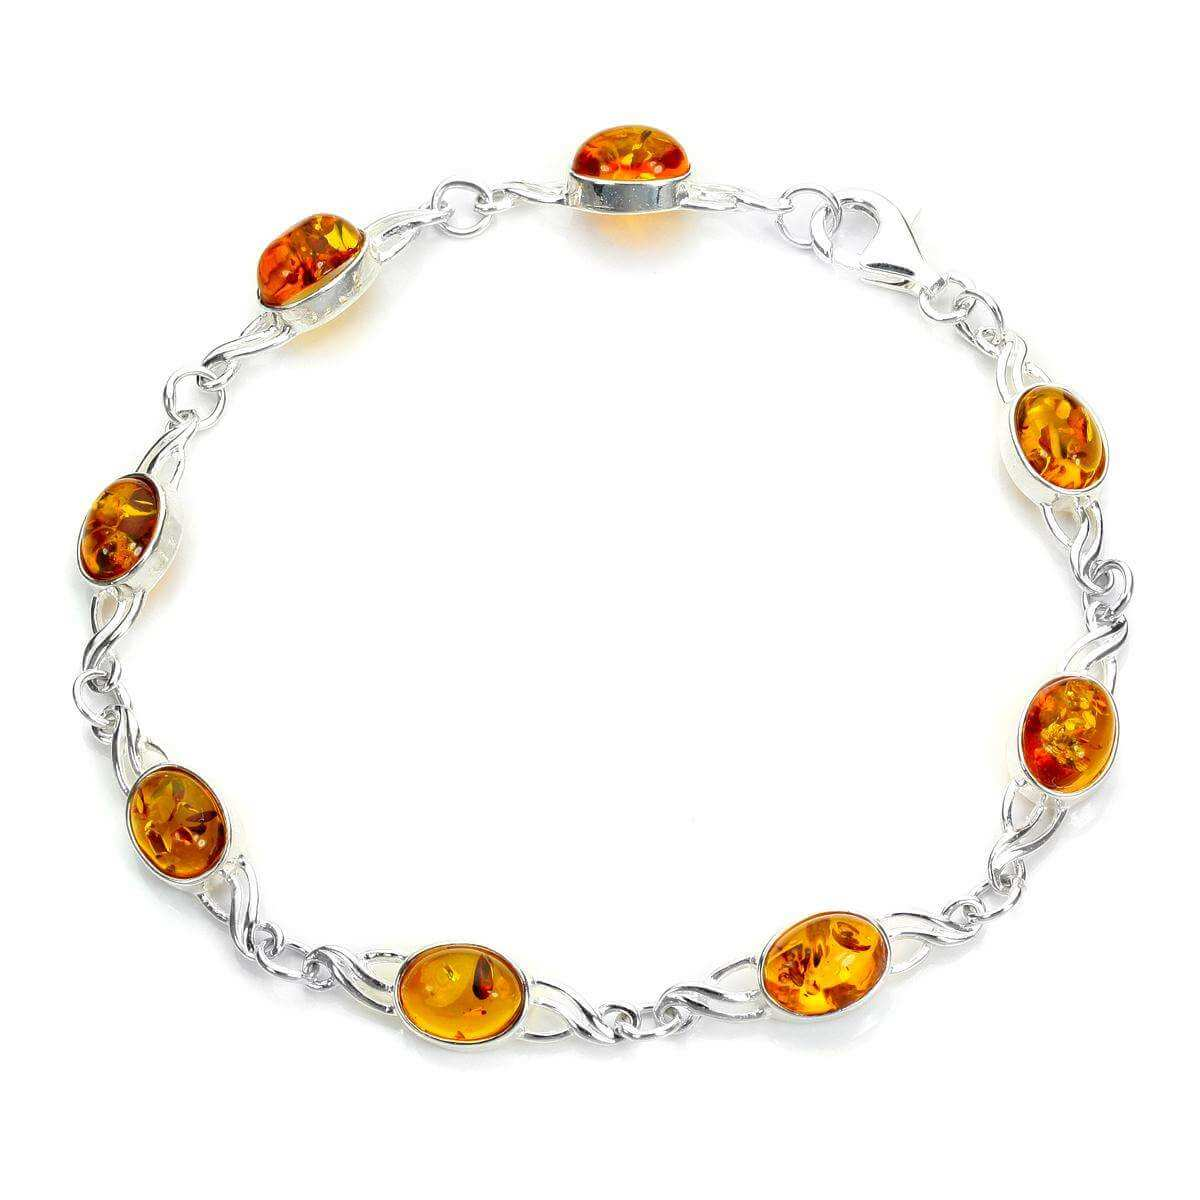 Sterling Silver & Baltic Amber Chain Bracelet